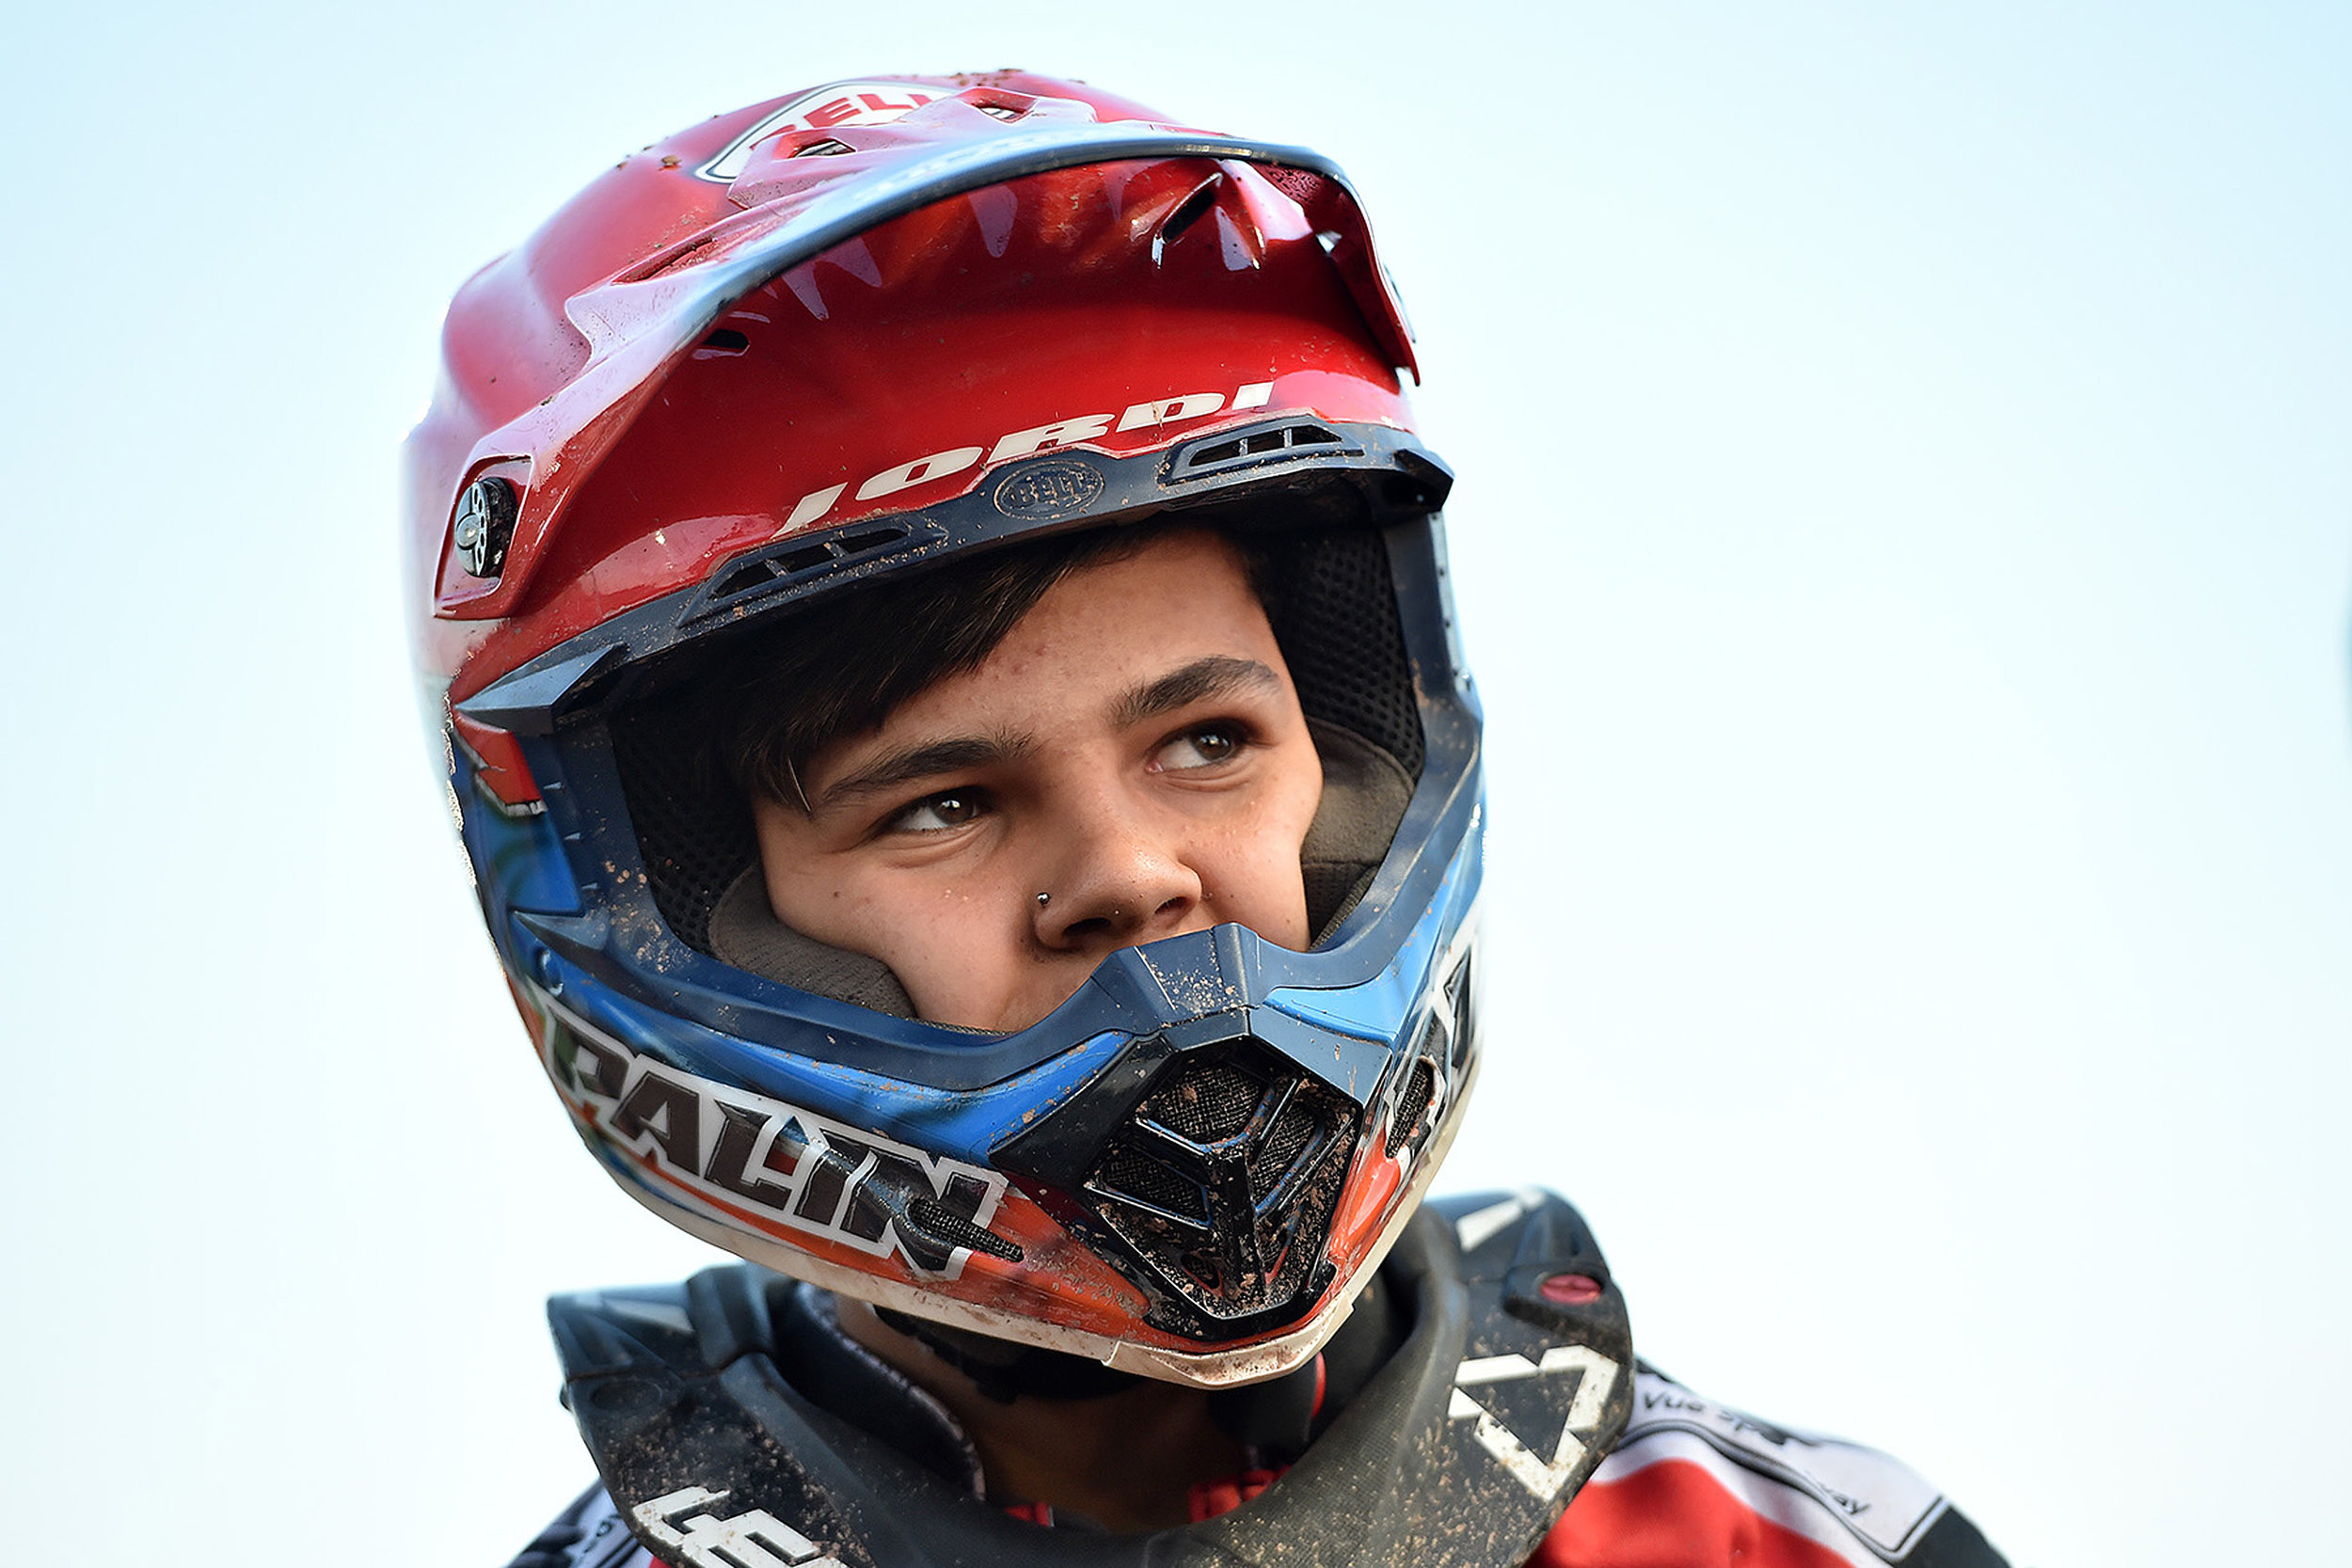 Jordan Palin stormed to a 15-point maximum at Cradley, unbeaten by any opposing rider.